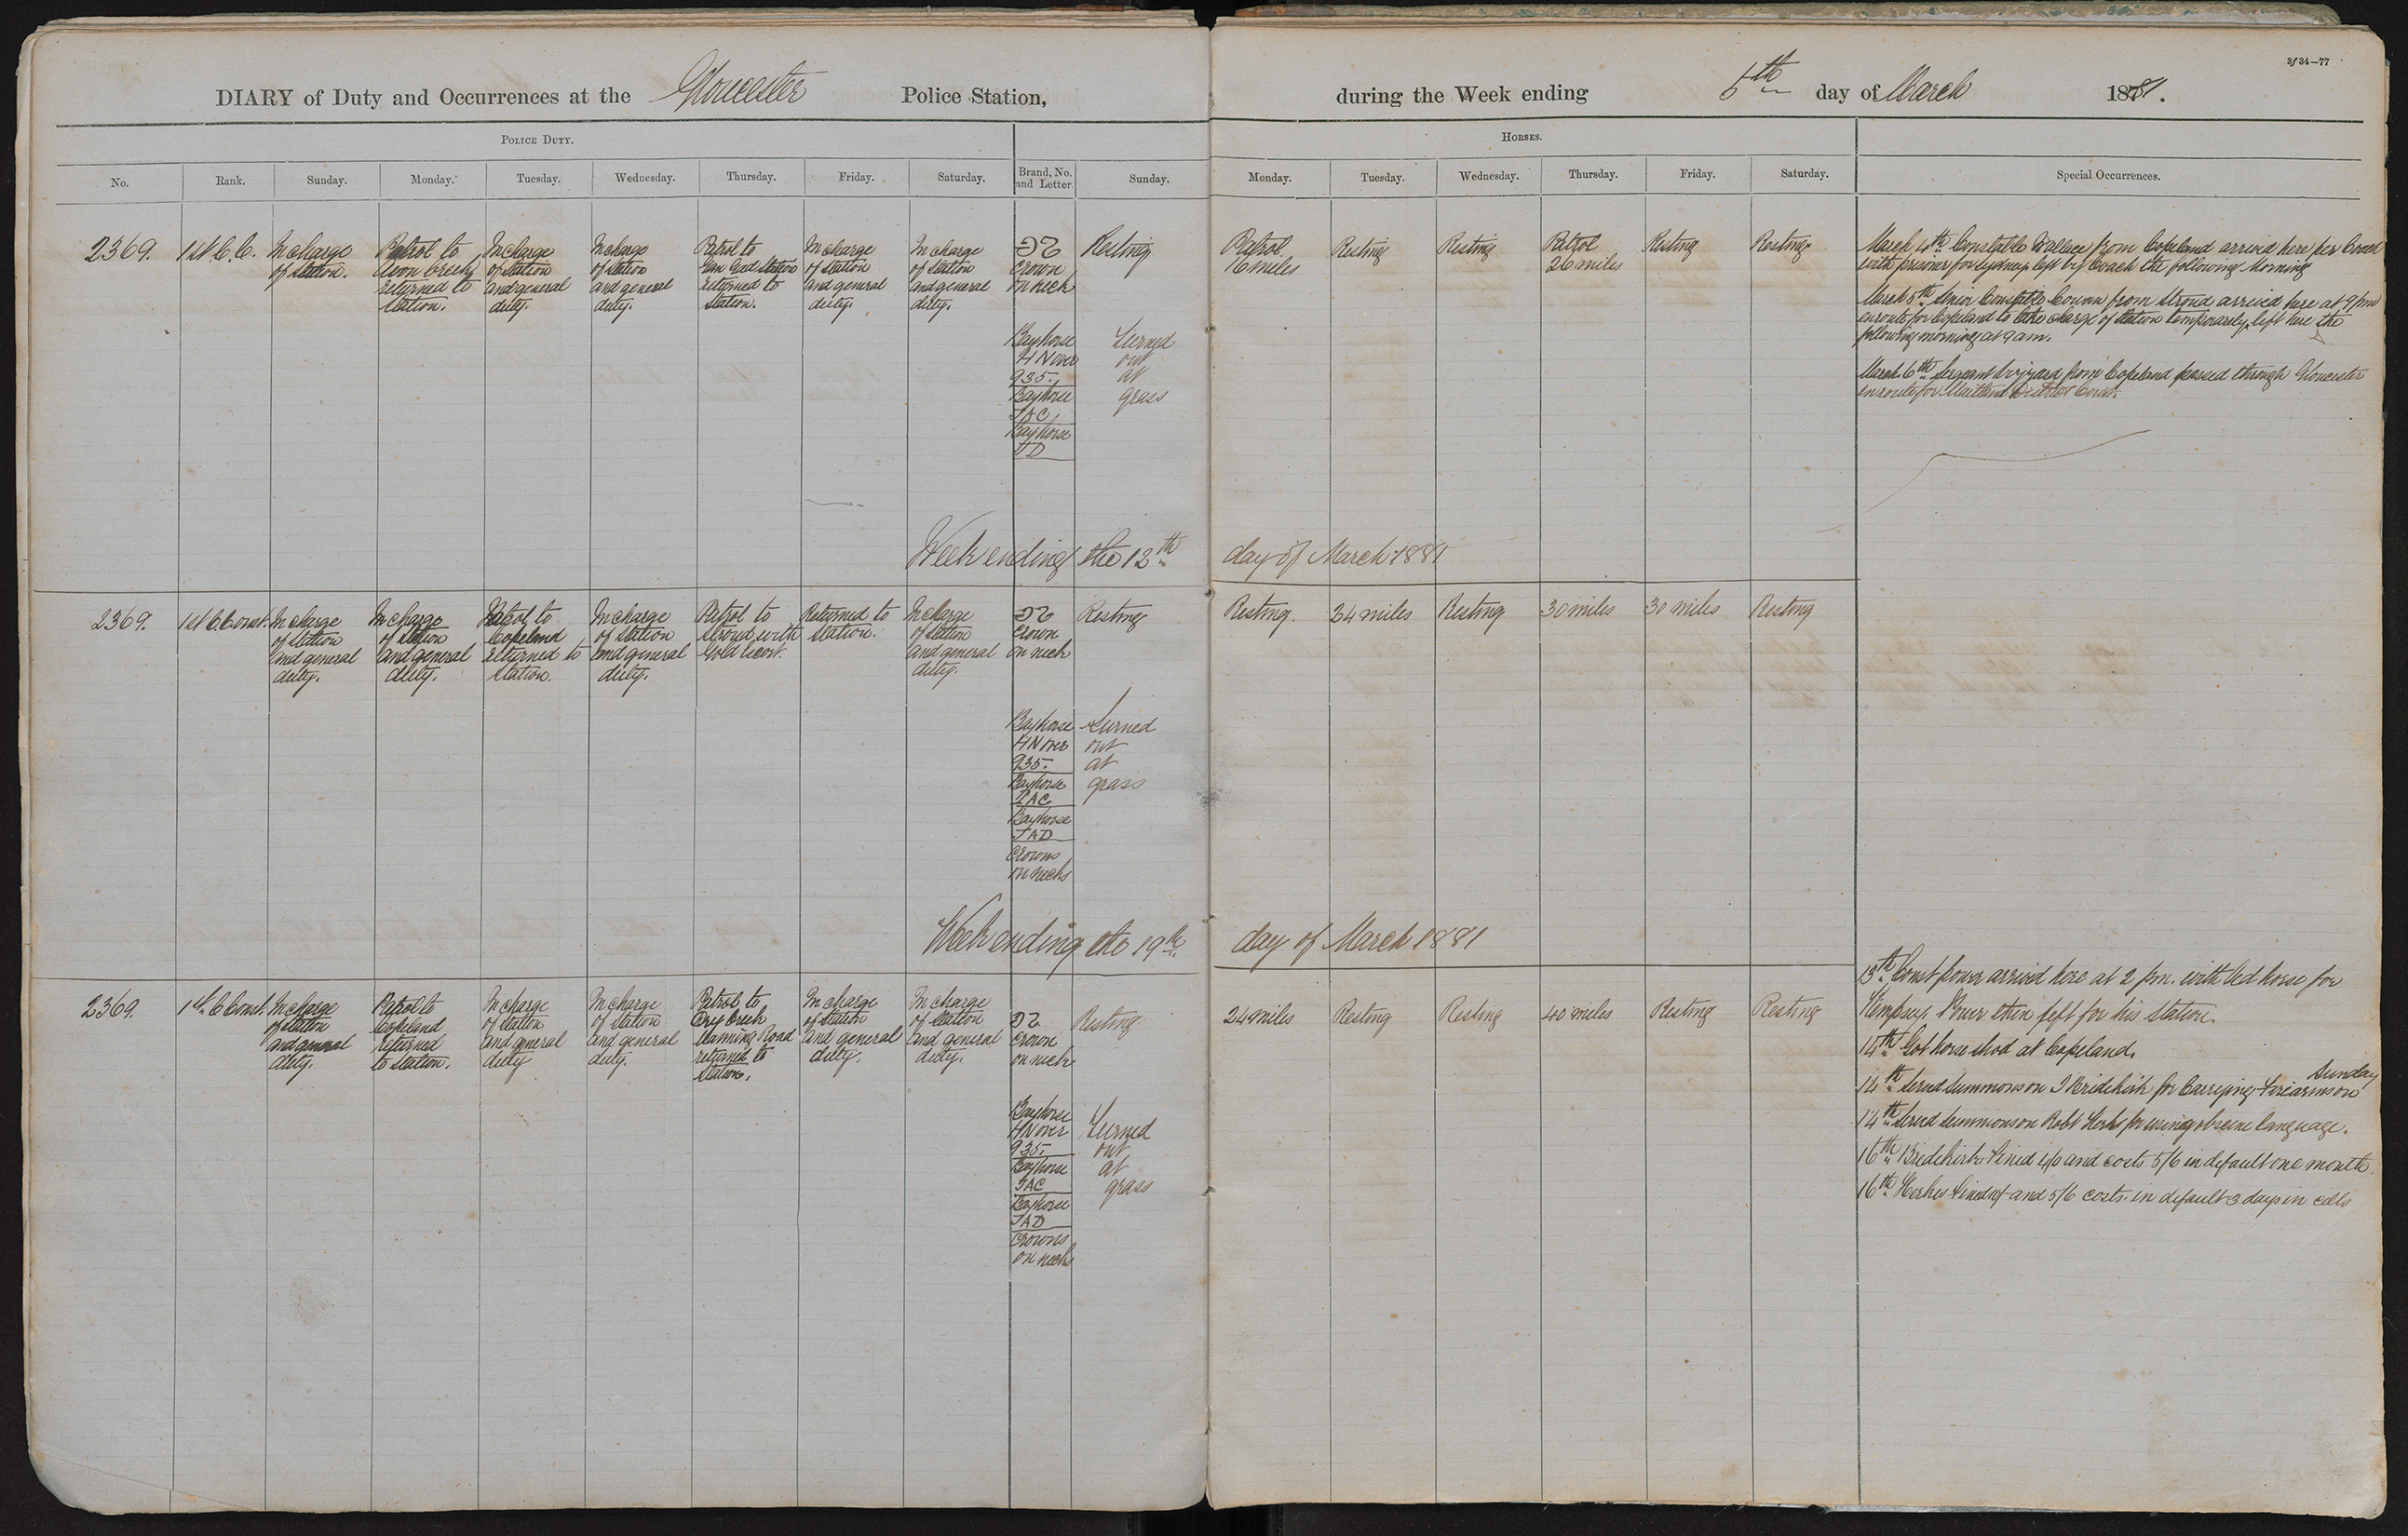 Diary of duty and occurrences at the Gloucester Police Station during the week ending the 6th day of March 1881